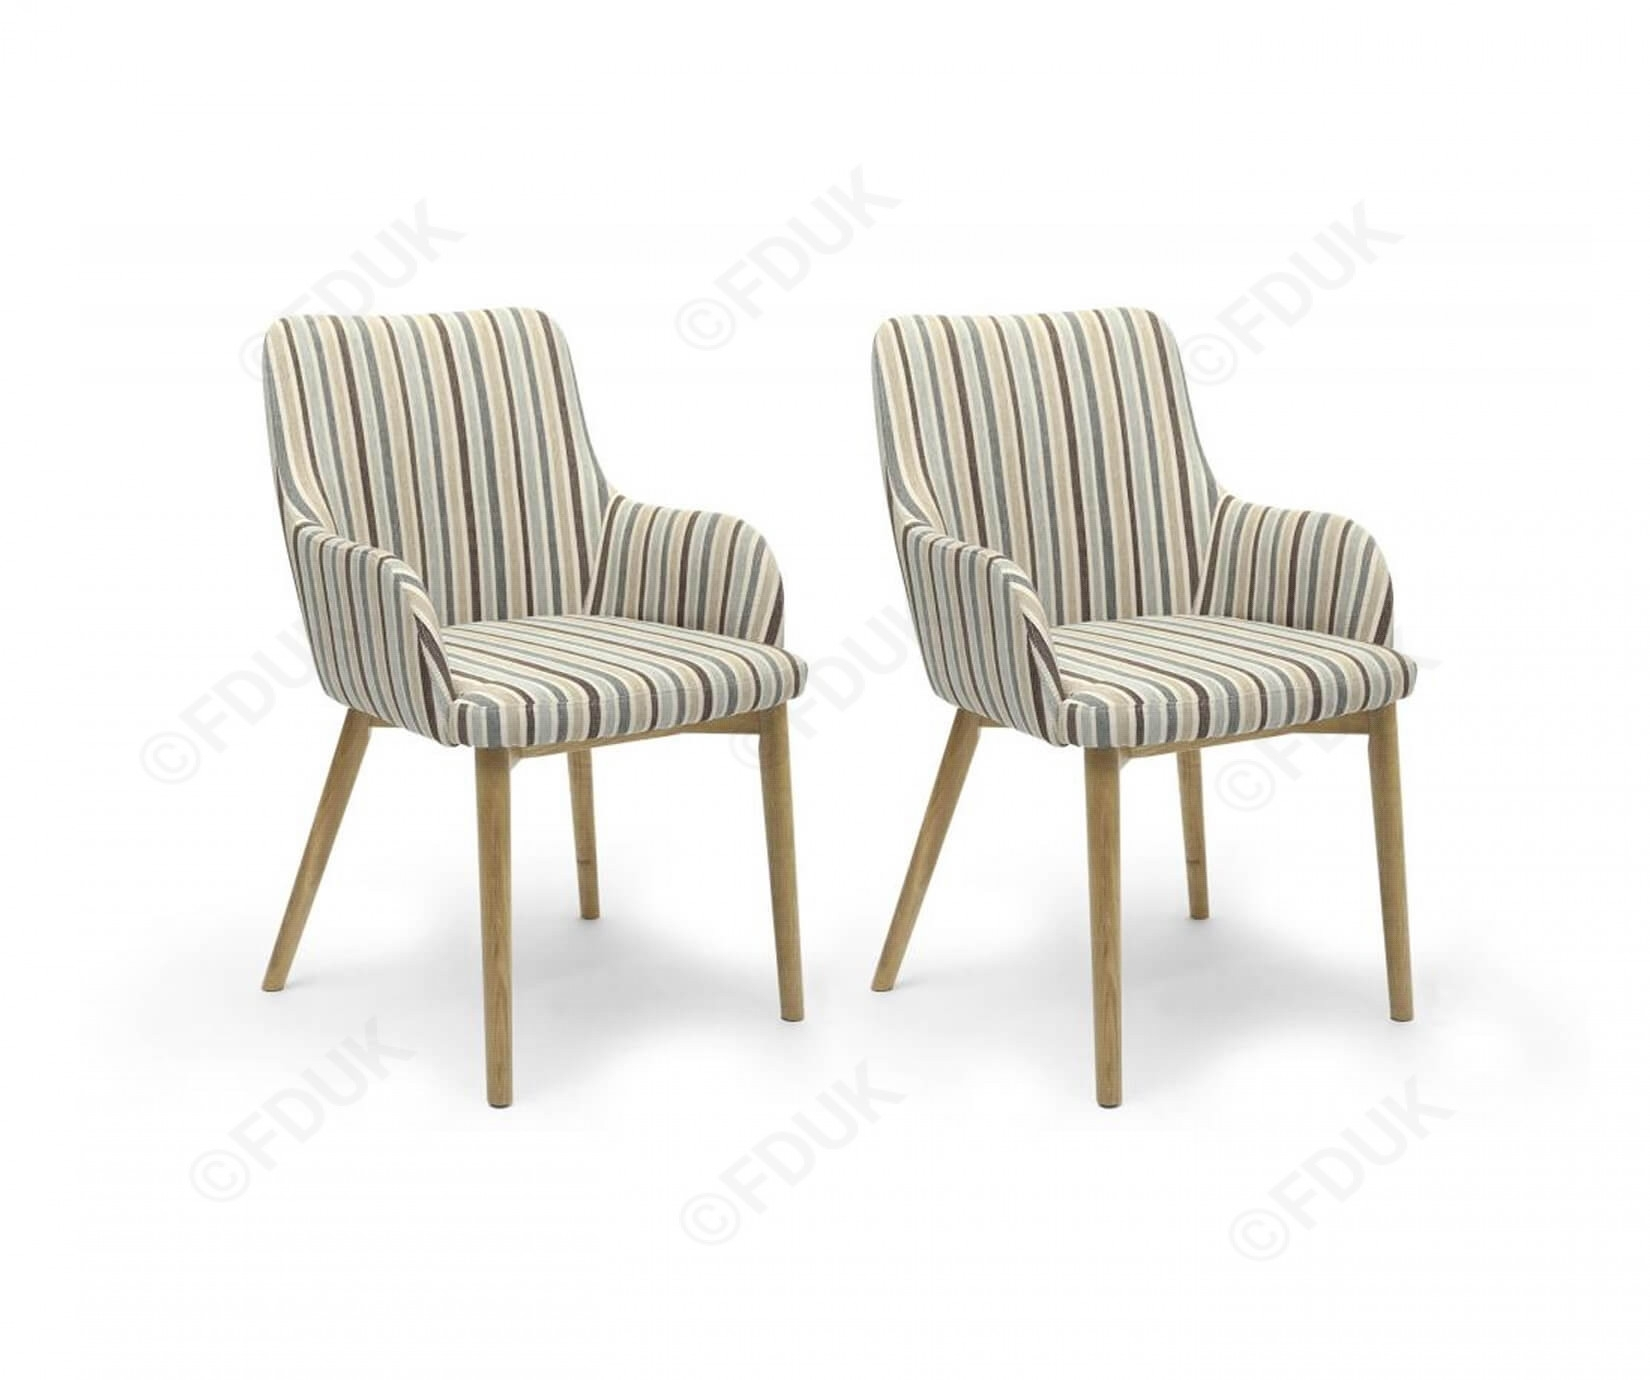 Blue Stripe Dining Chairs Intended For Trendy Shankar Sidcup (View 16 of 20)